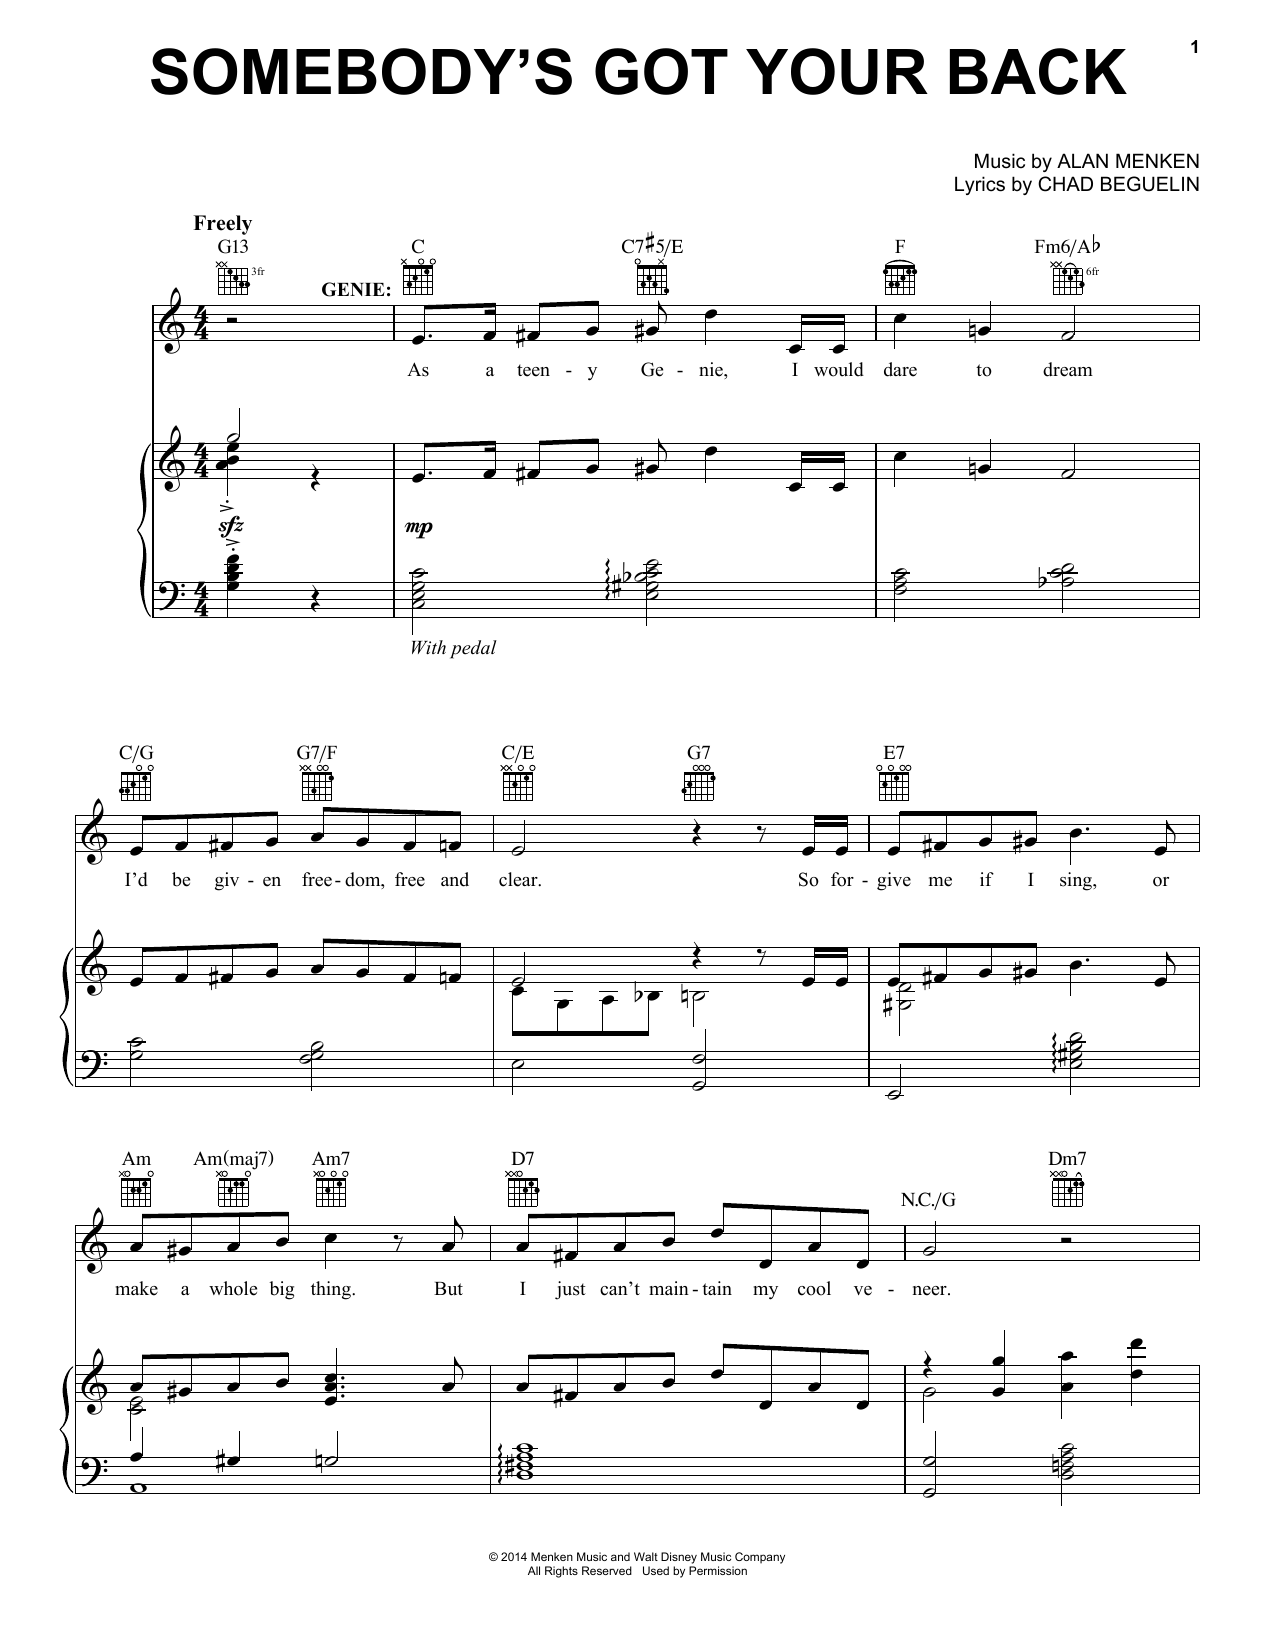 Alan Menken Somebody's Got Your Back (from Aladdin: The Broadway Musical) sheet music notes and chords